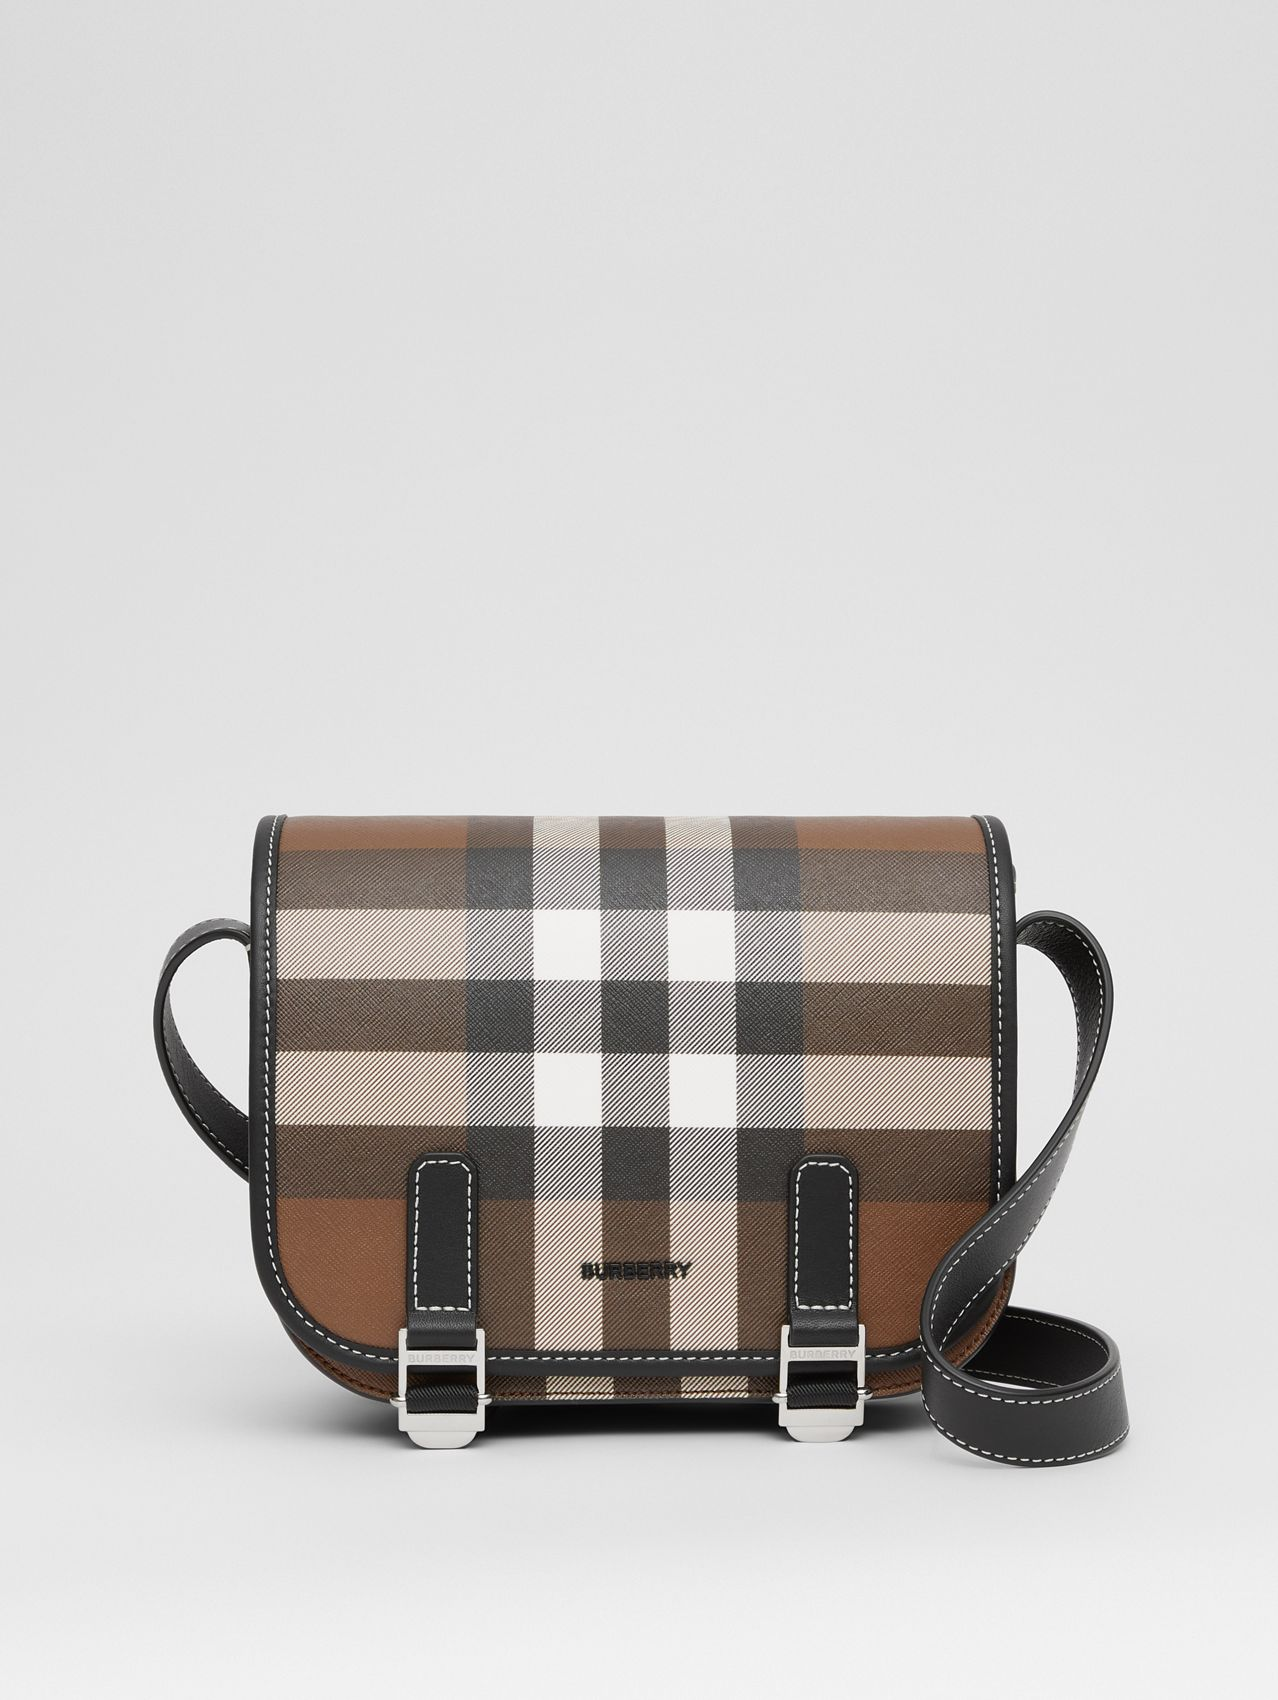 Borsa messenger in e-canvas con motivo tartan (Marrone Betulla Scuro)